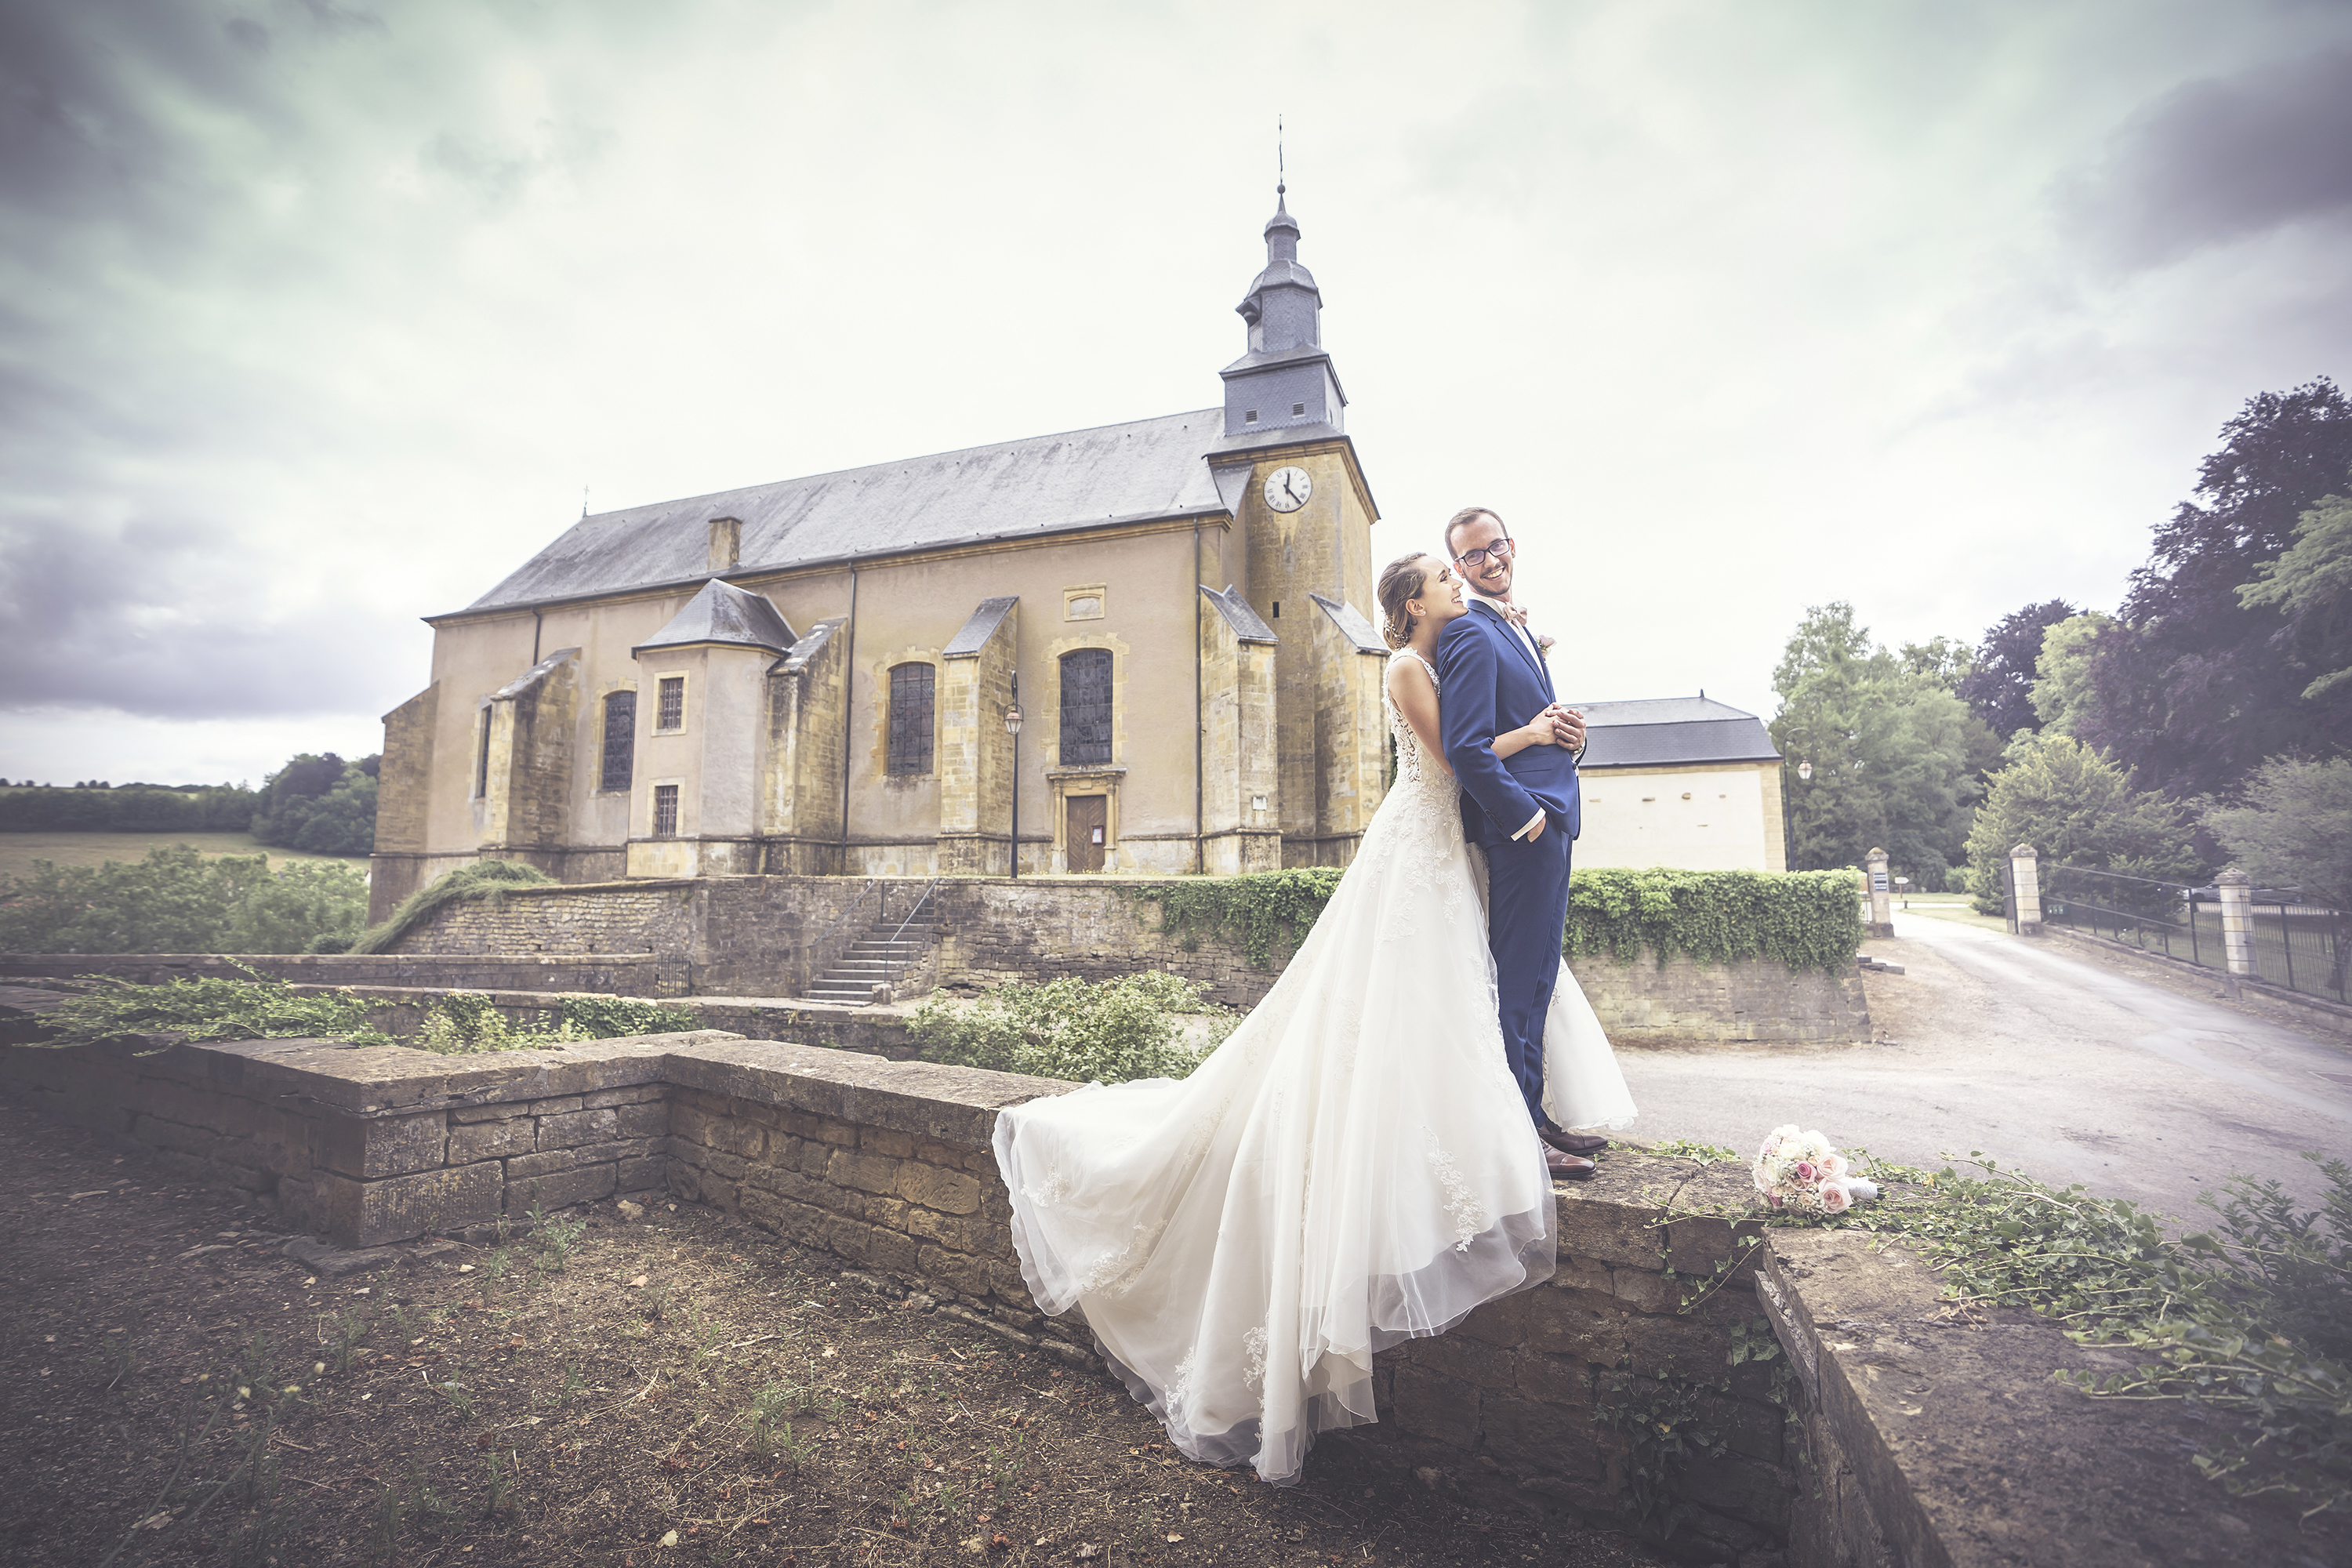 Mariage, Château, Moselle